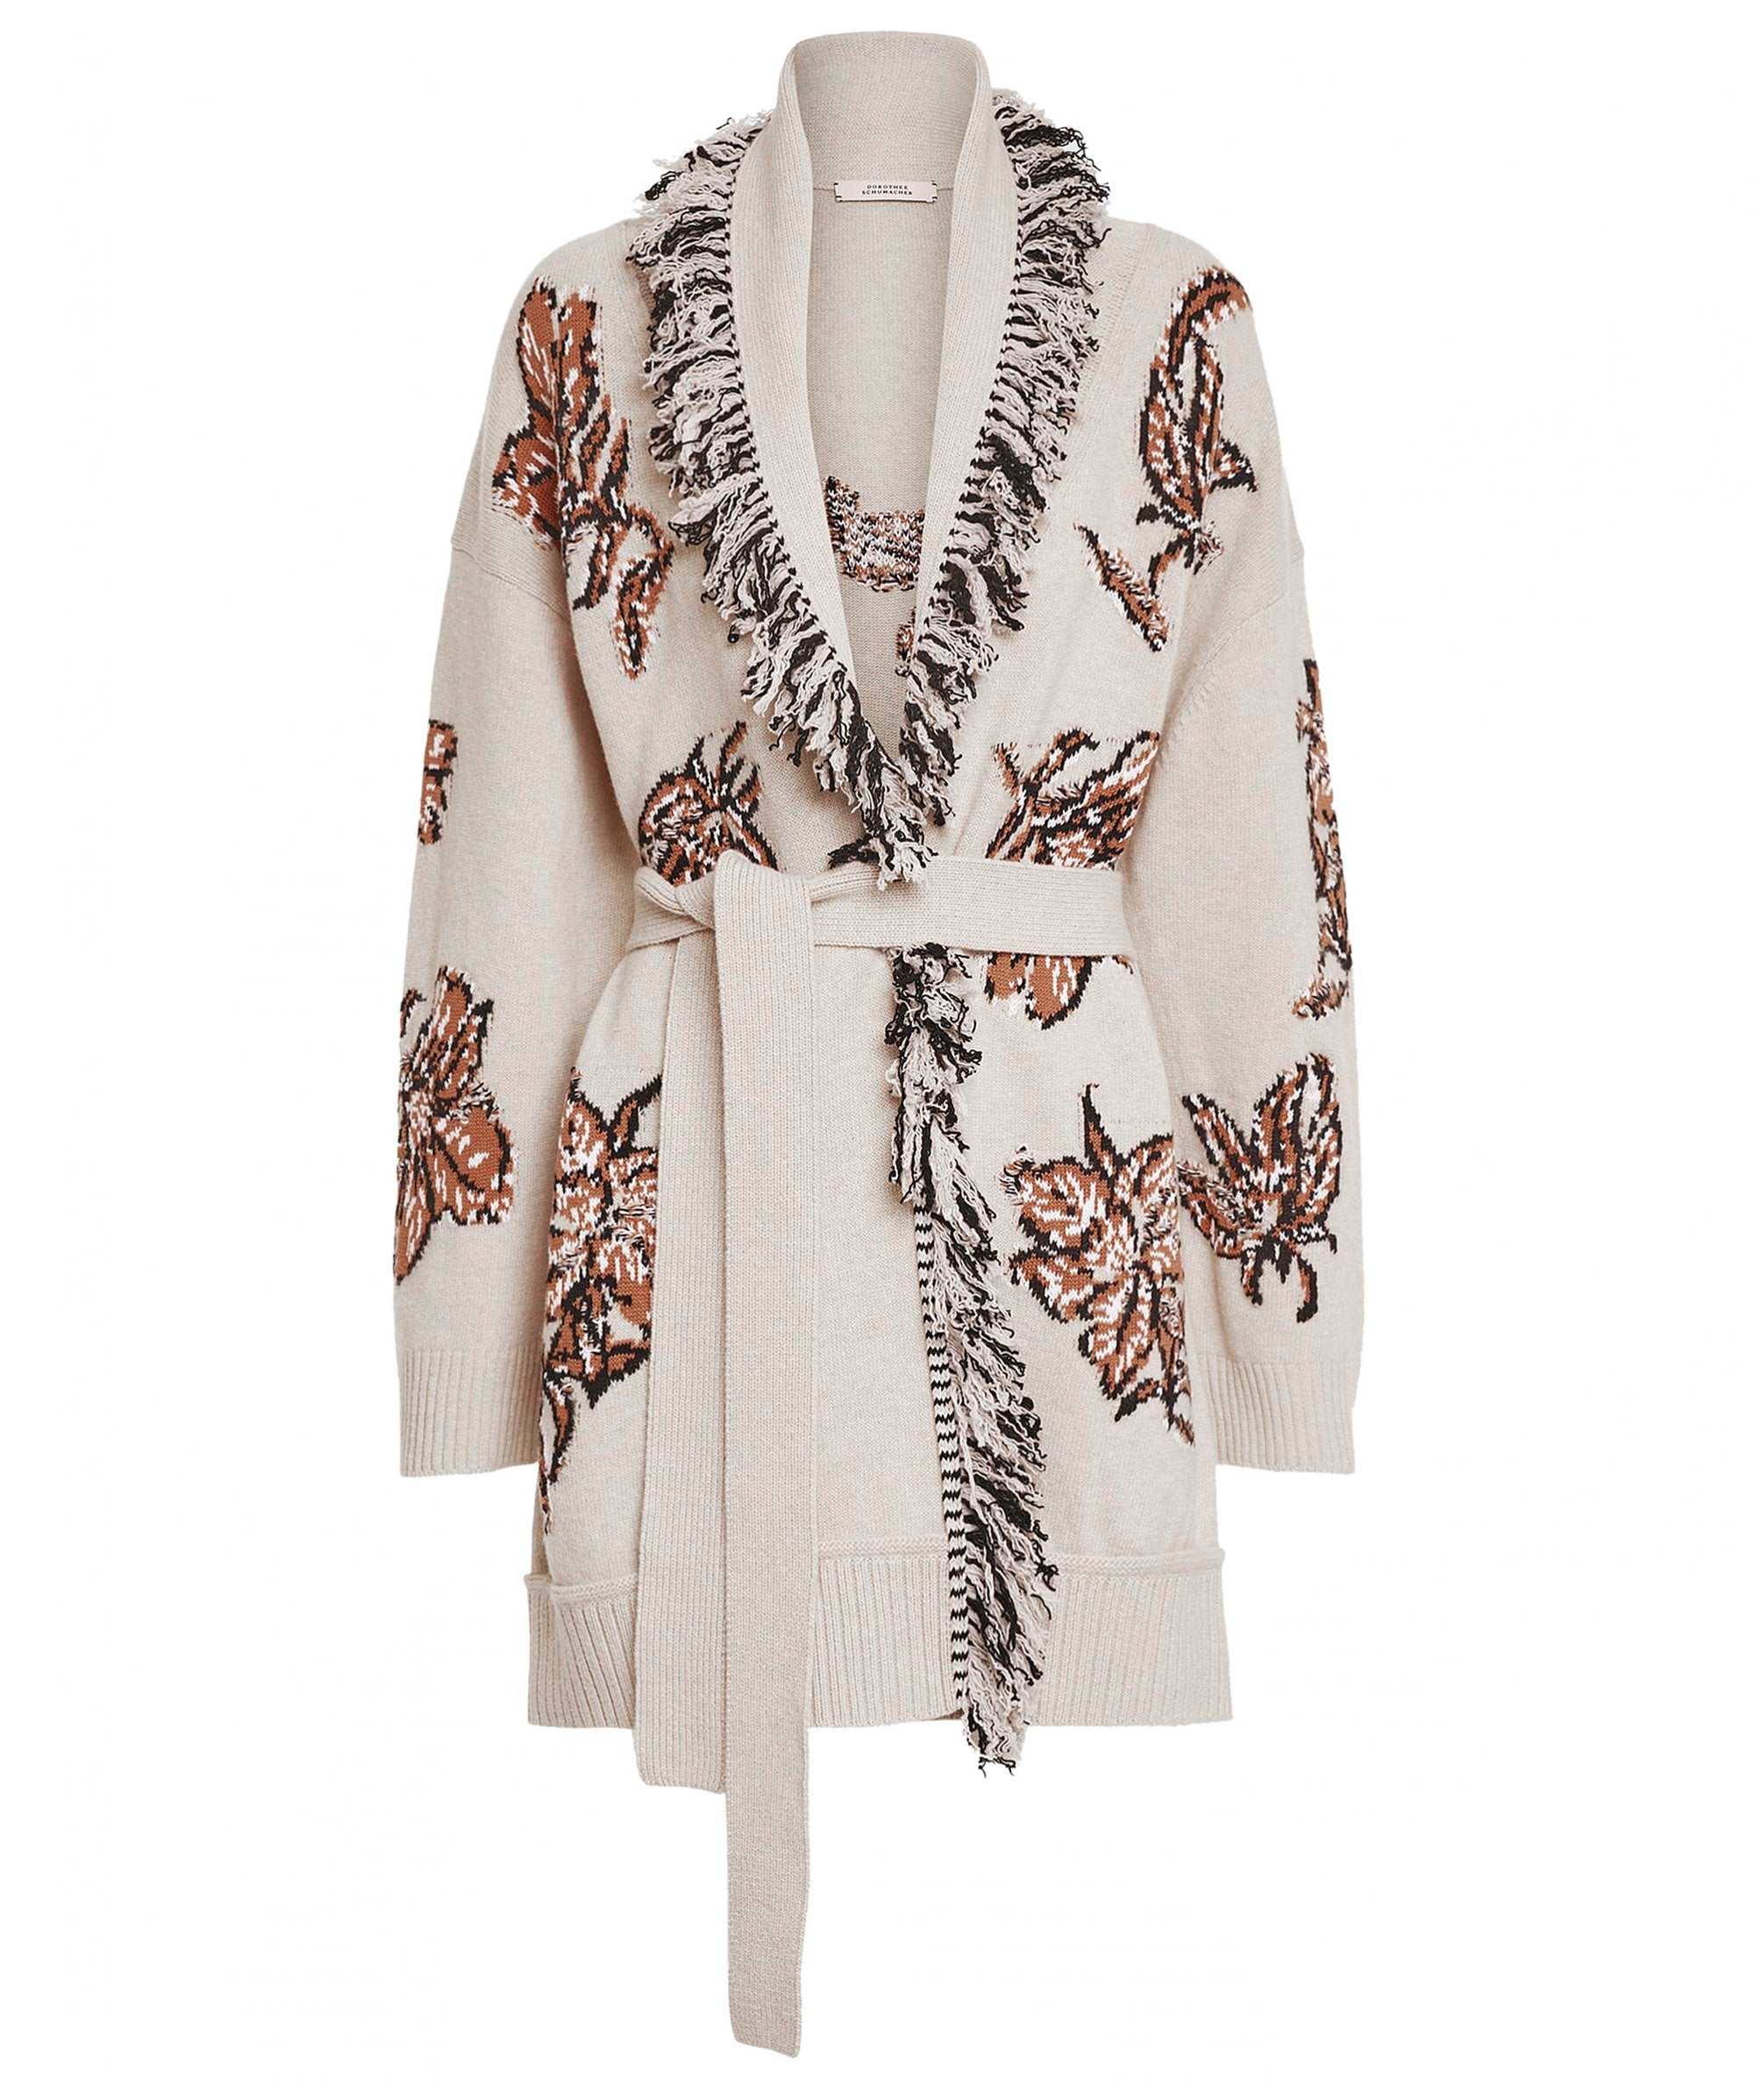 This is an image of a cardigan with a fringed trim